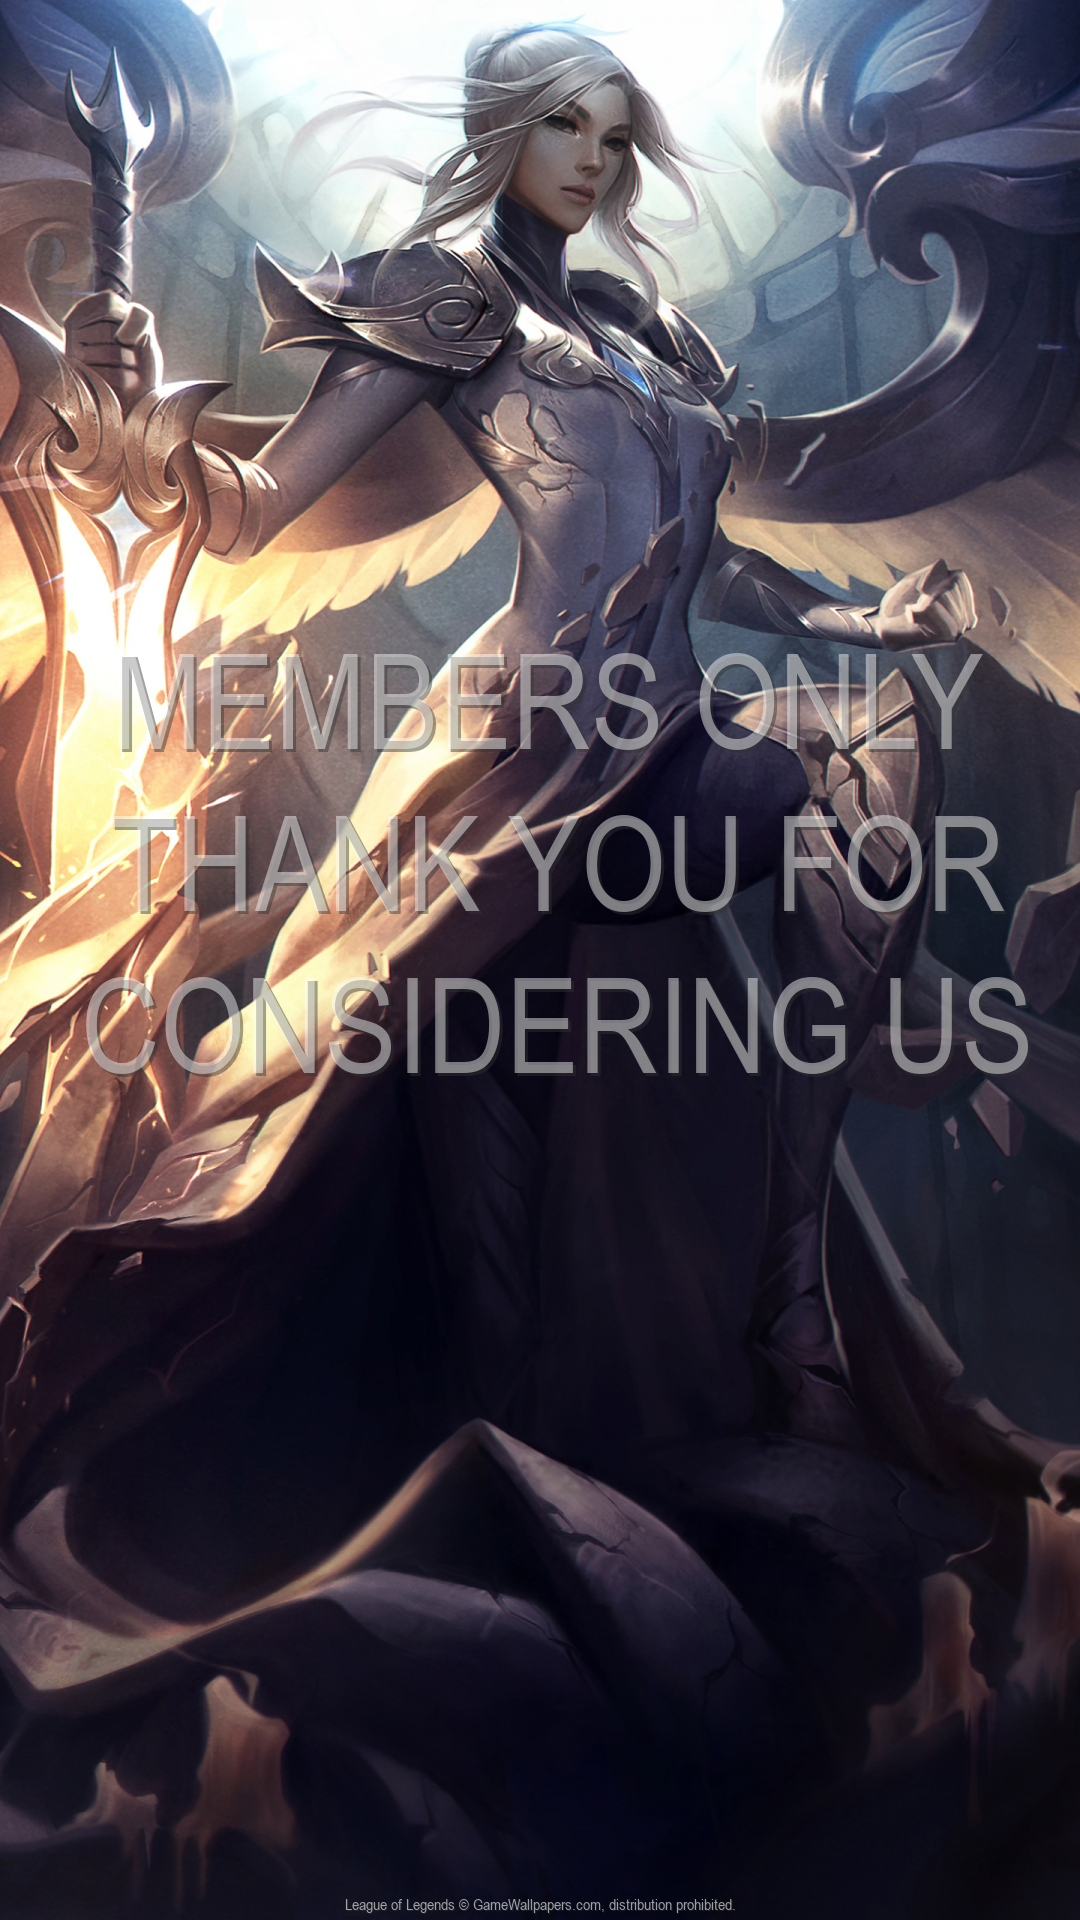 League of Legends 1920x1080 Mobile wallpaper or background 106